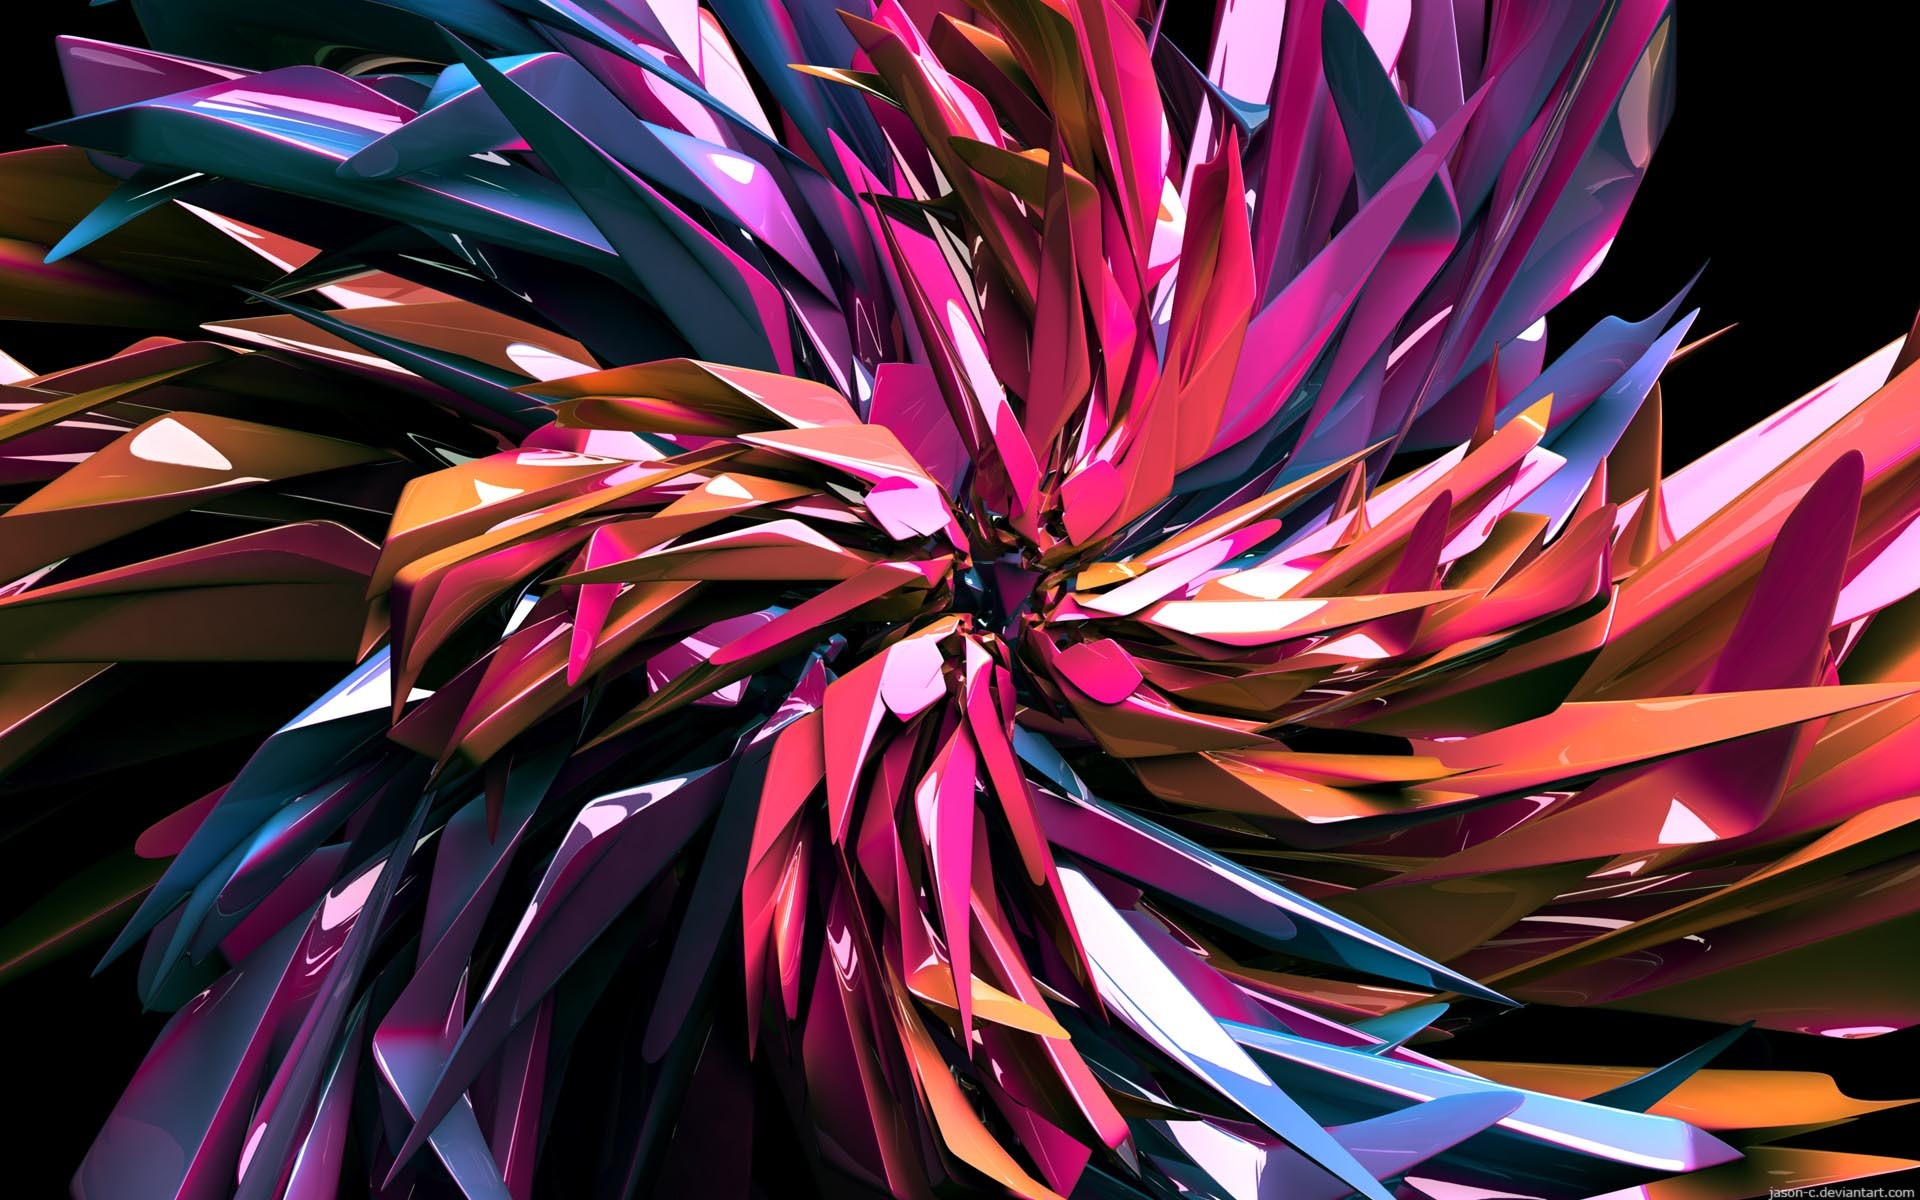 3d Wallpapers For Windows 8 Hd Free Download Desktop Wallpaper Abstract 183 ①